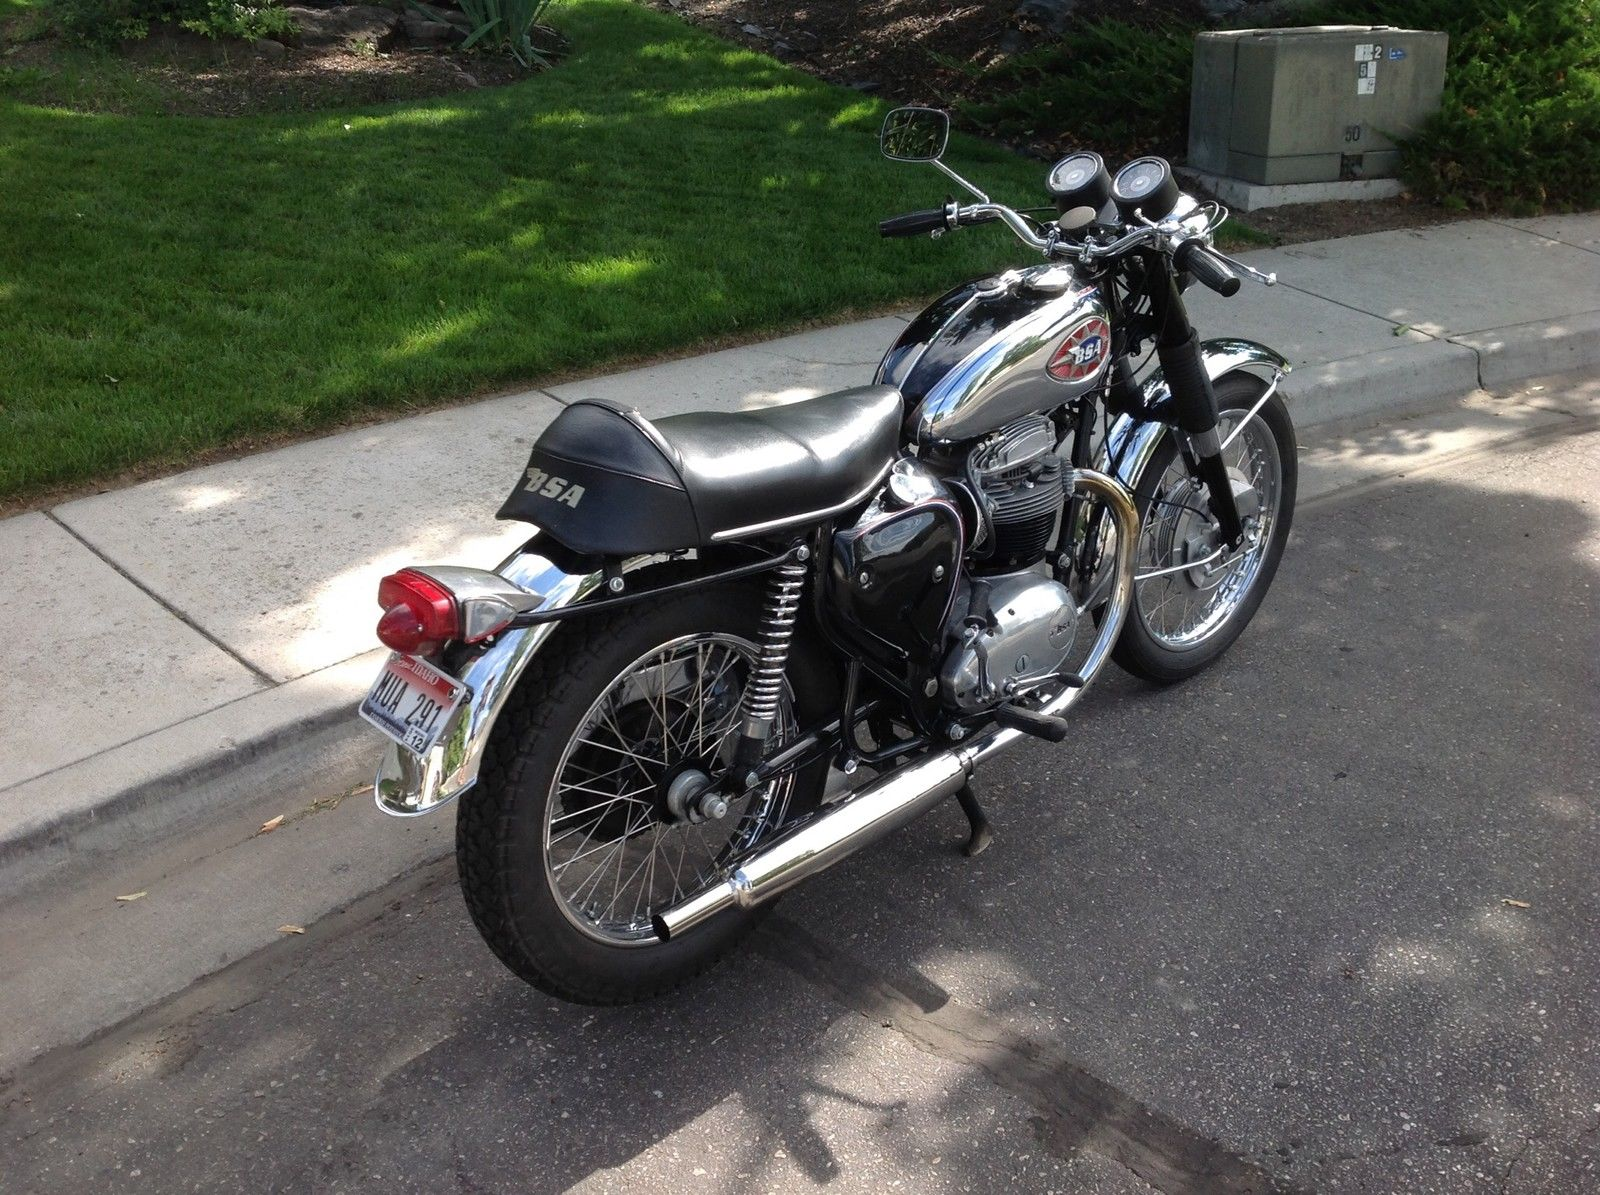 BSA A65 Lightning - 1969 - Seat, Gas Tank, Muffler, BSA Badge and Rear Wheel.